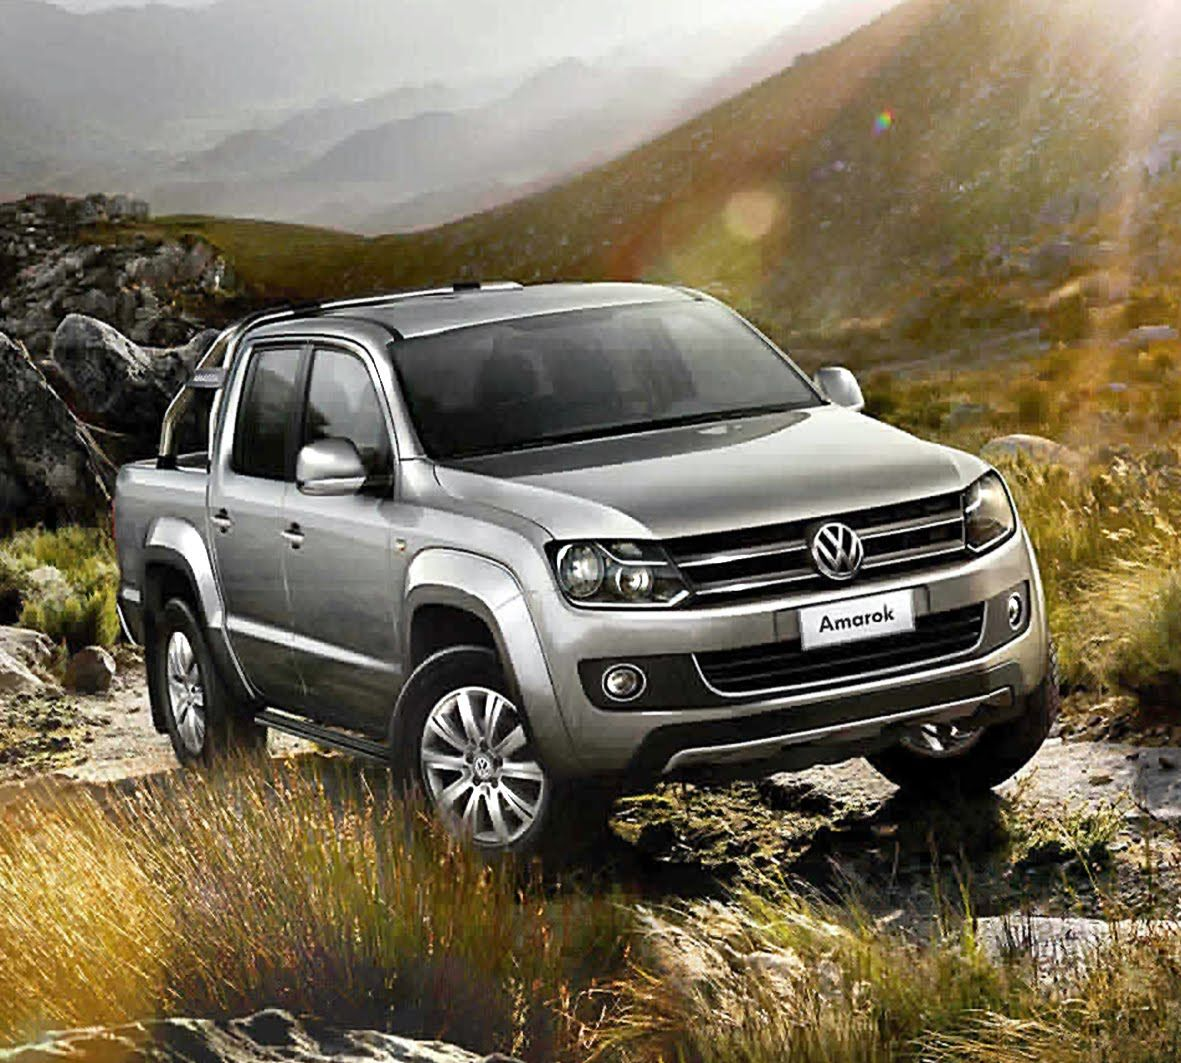 Volkswagen Amarok | pik up | Pinterest